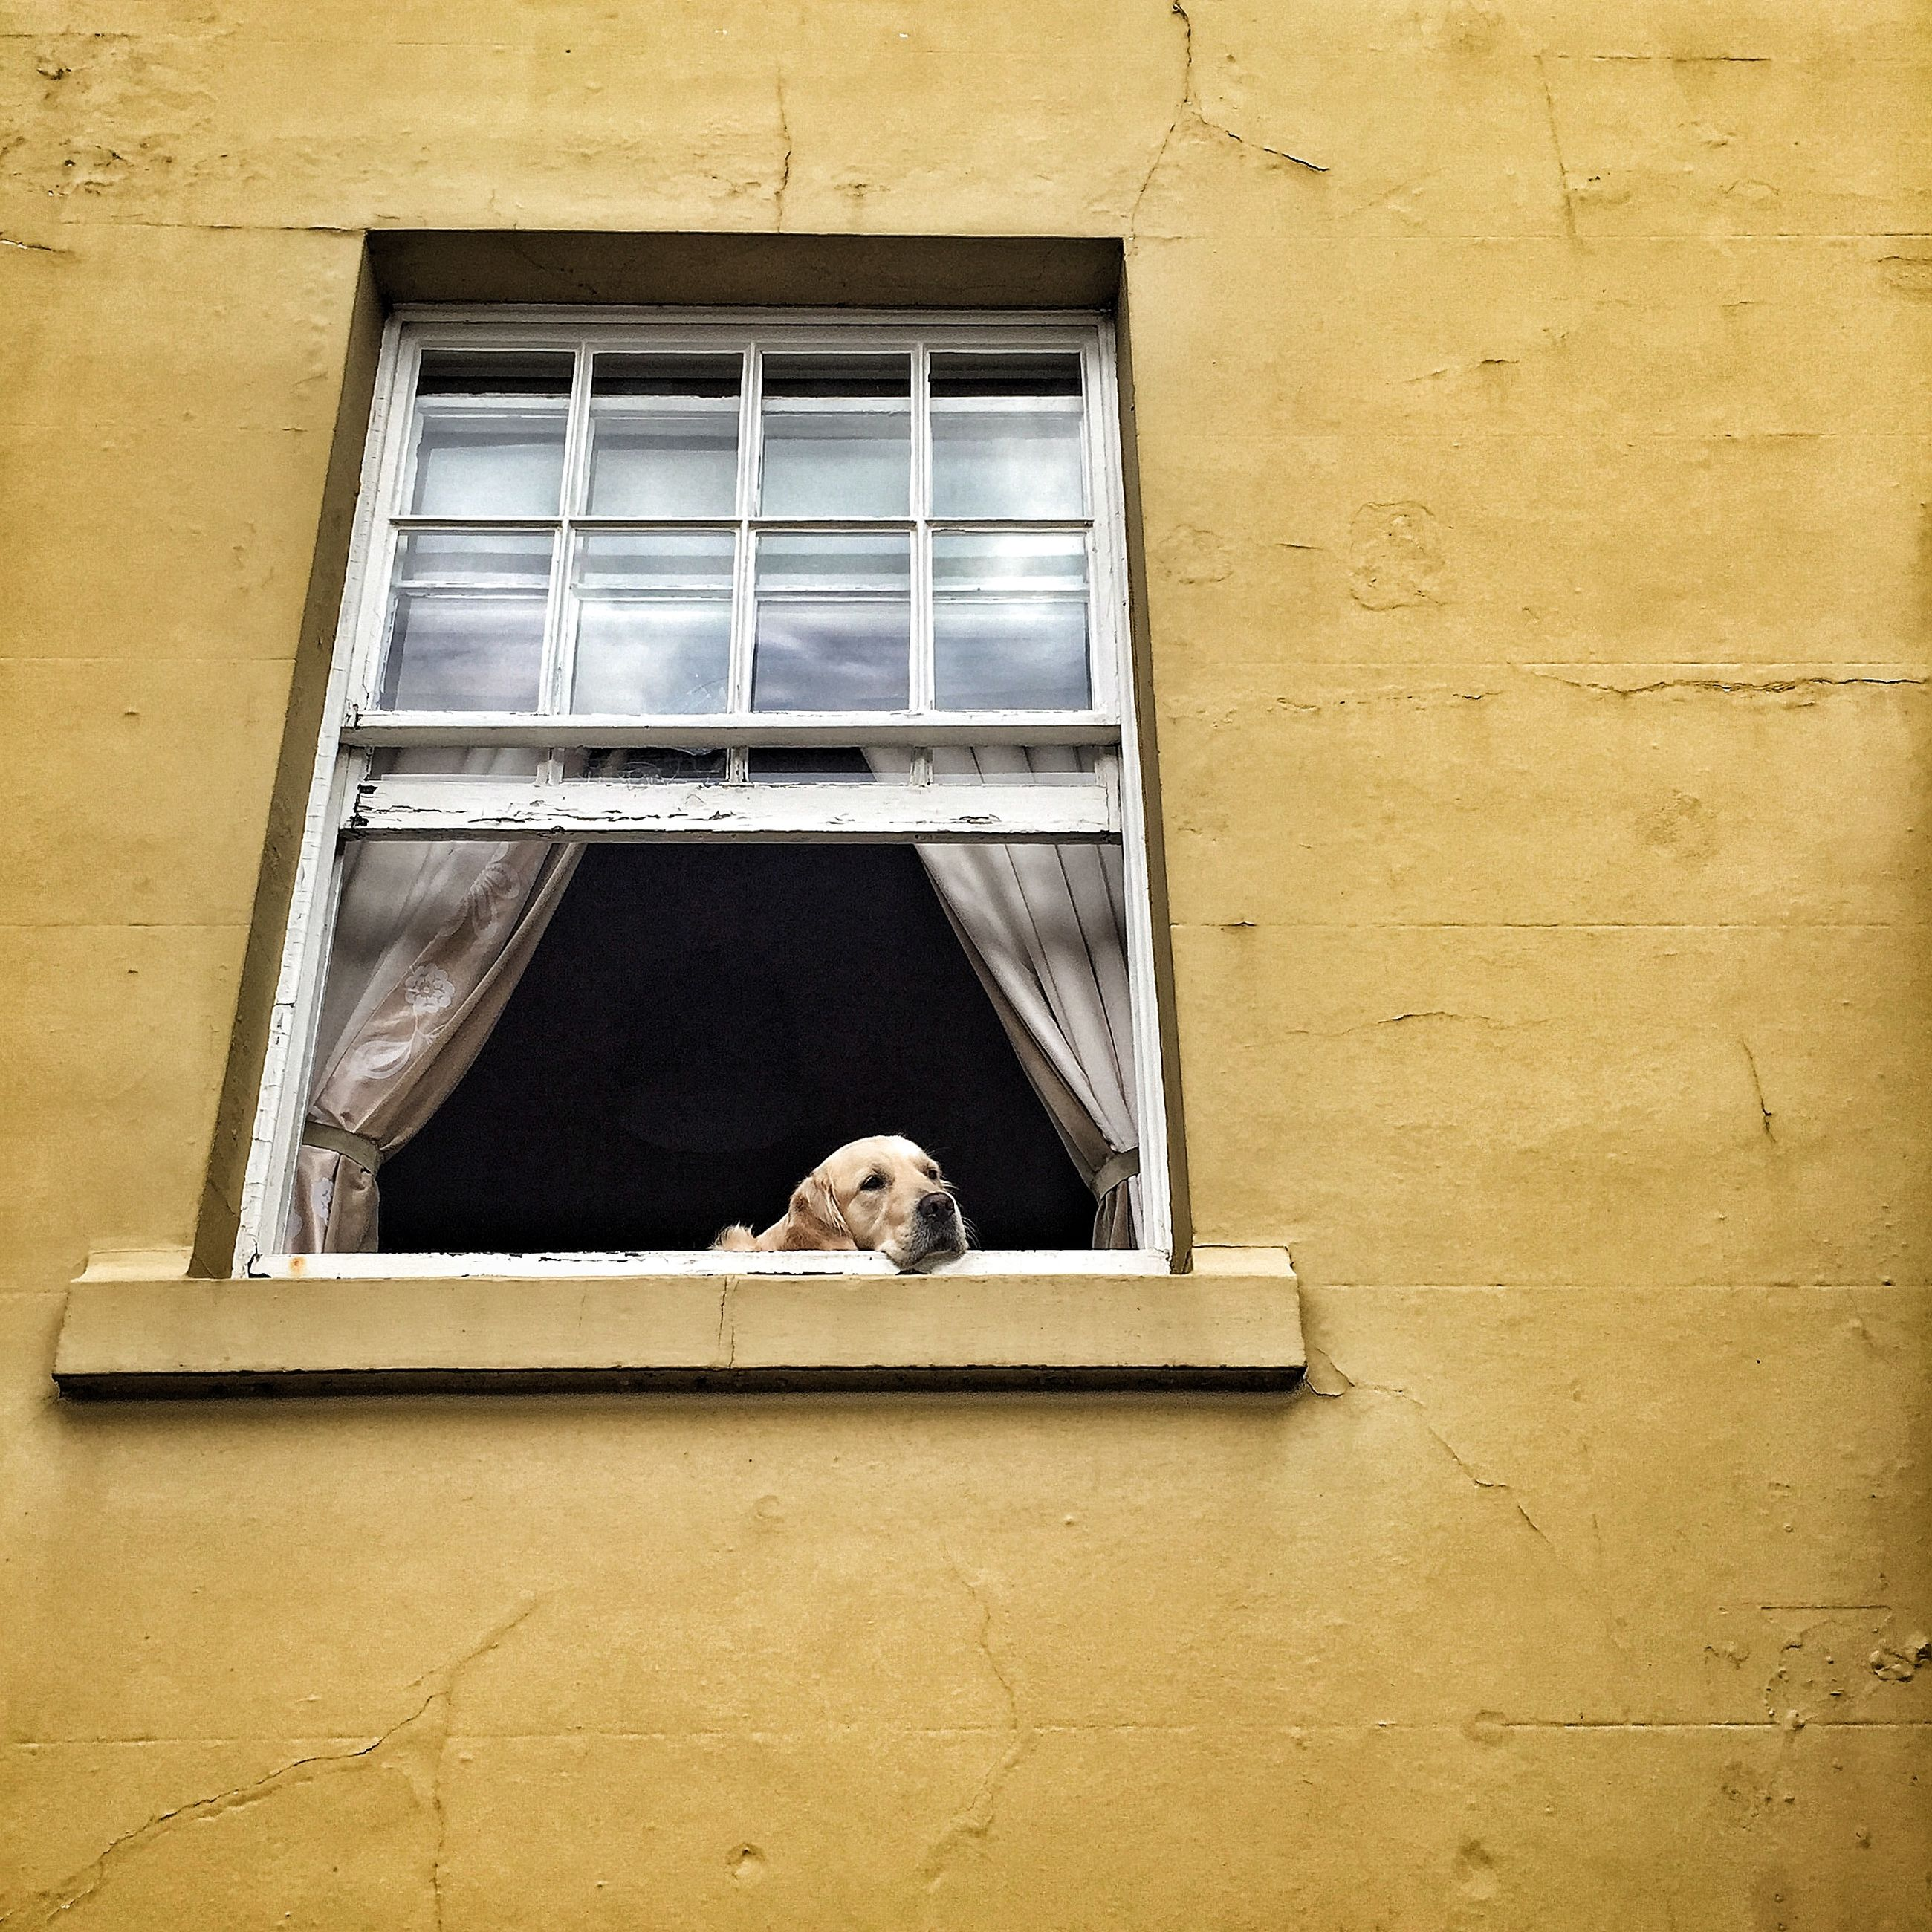 animal themes, window, one animal, building exterior, architecture, pets, built structure, domestic animals, mammal, domestic cat, cat, house, low angle view, residential structure, feline, residential building, window sill, wall - building feature, no people, glass - material